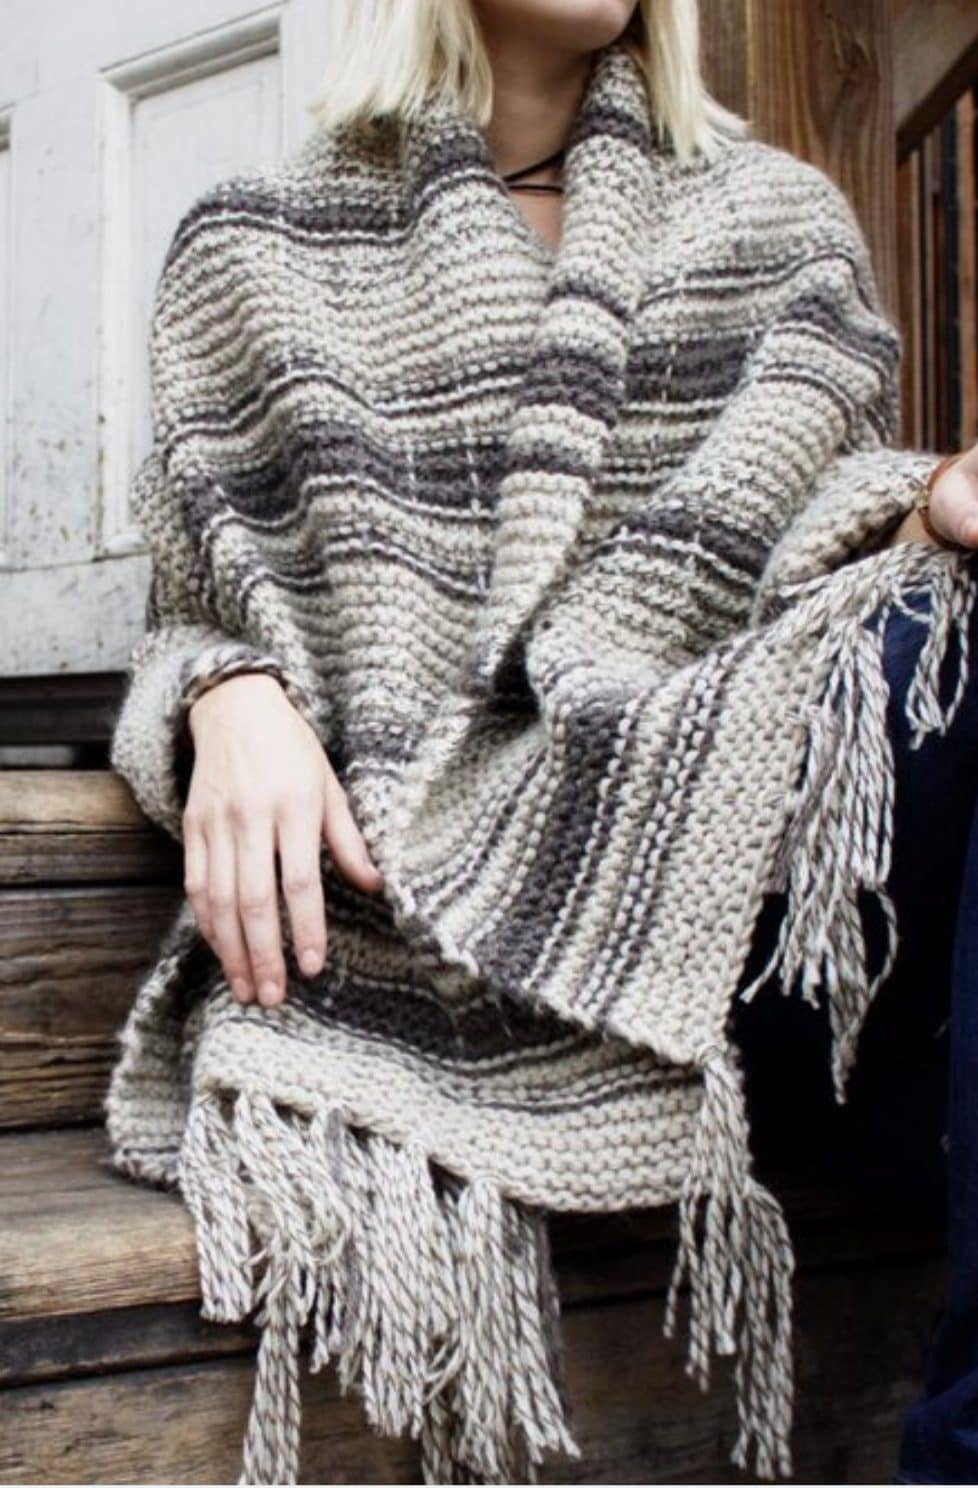 5 Amazing Fall Knitting Patterns